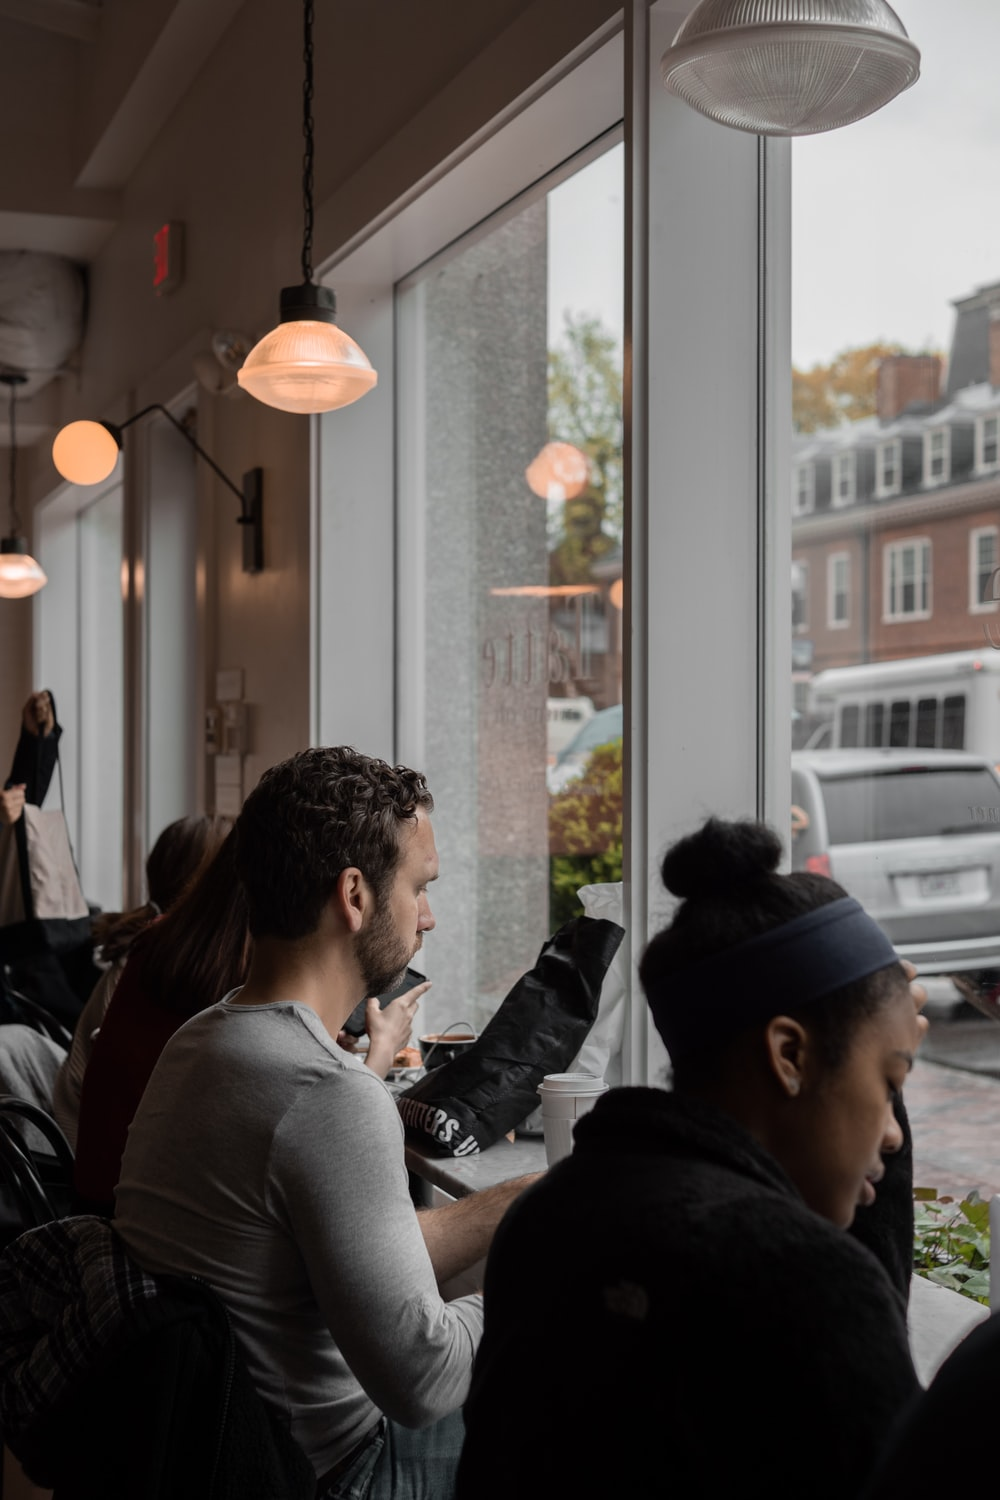 people sits by the table facing windows